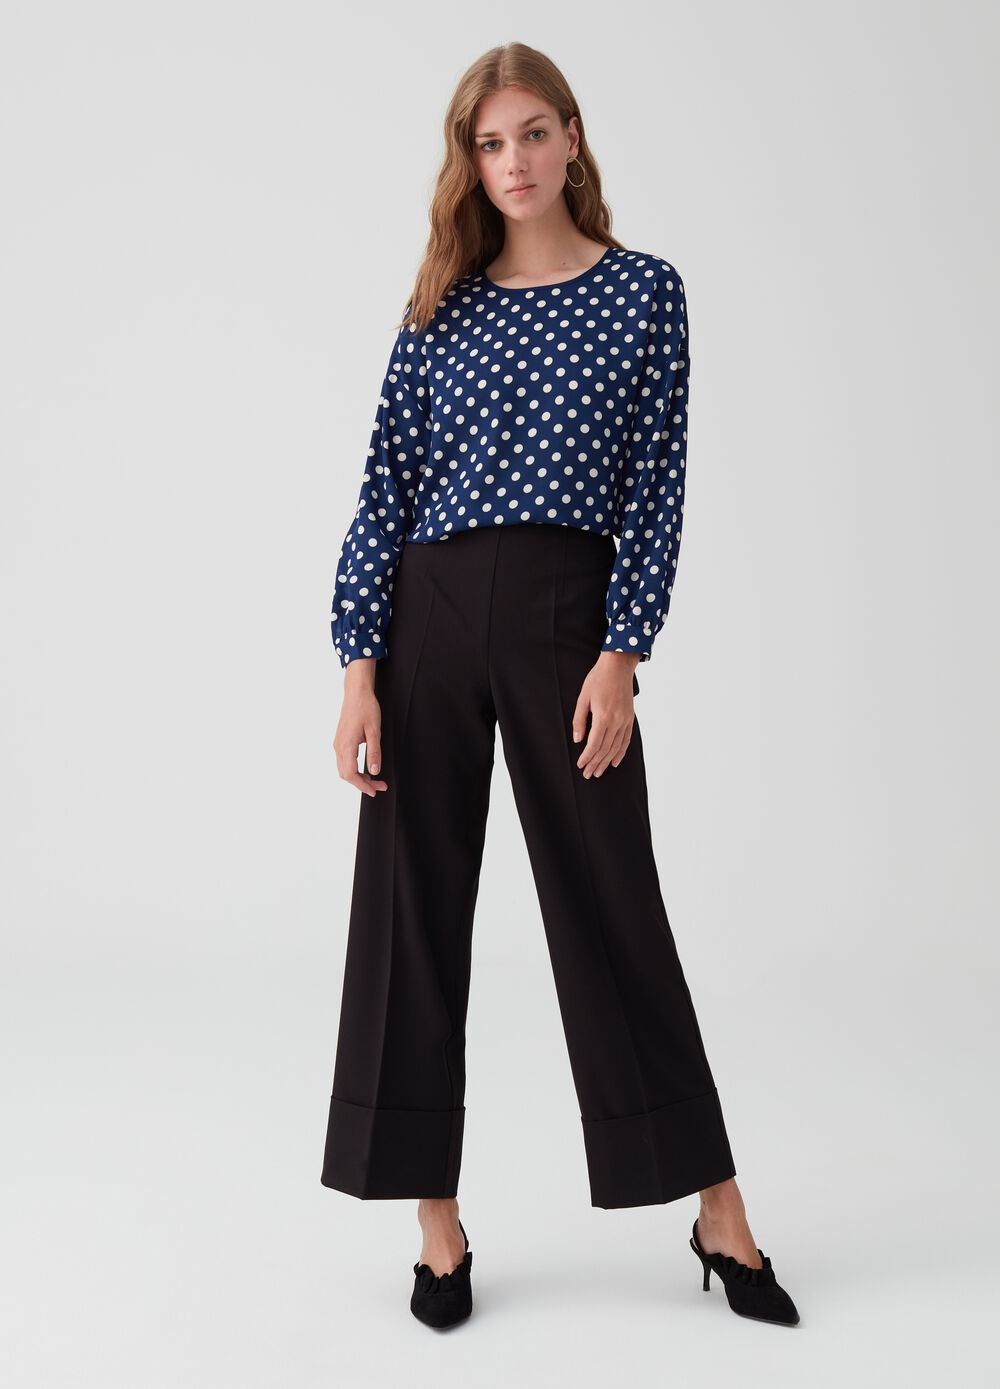 Stretch palazzo trousers with turn-up hems